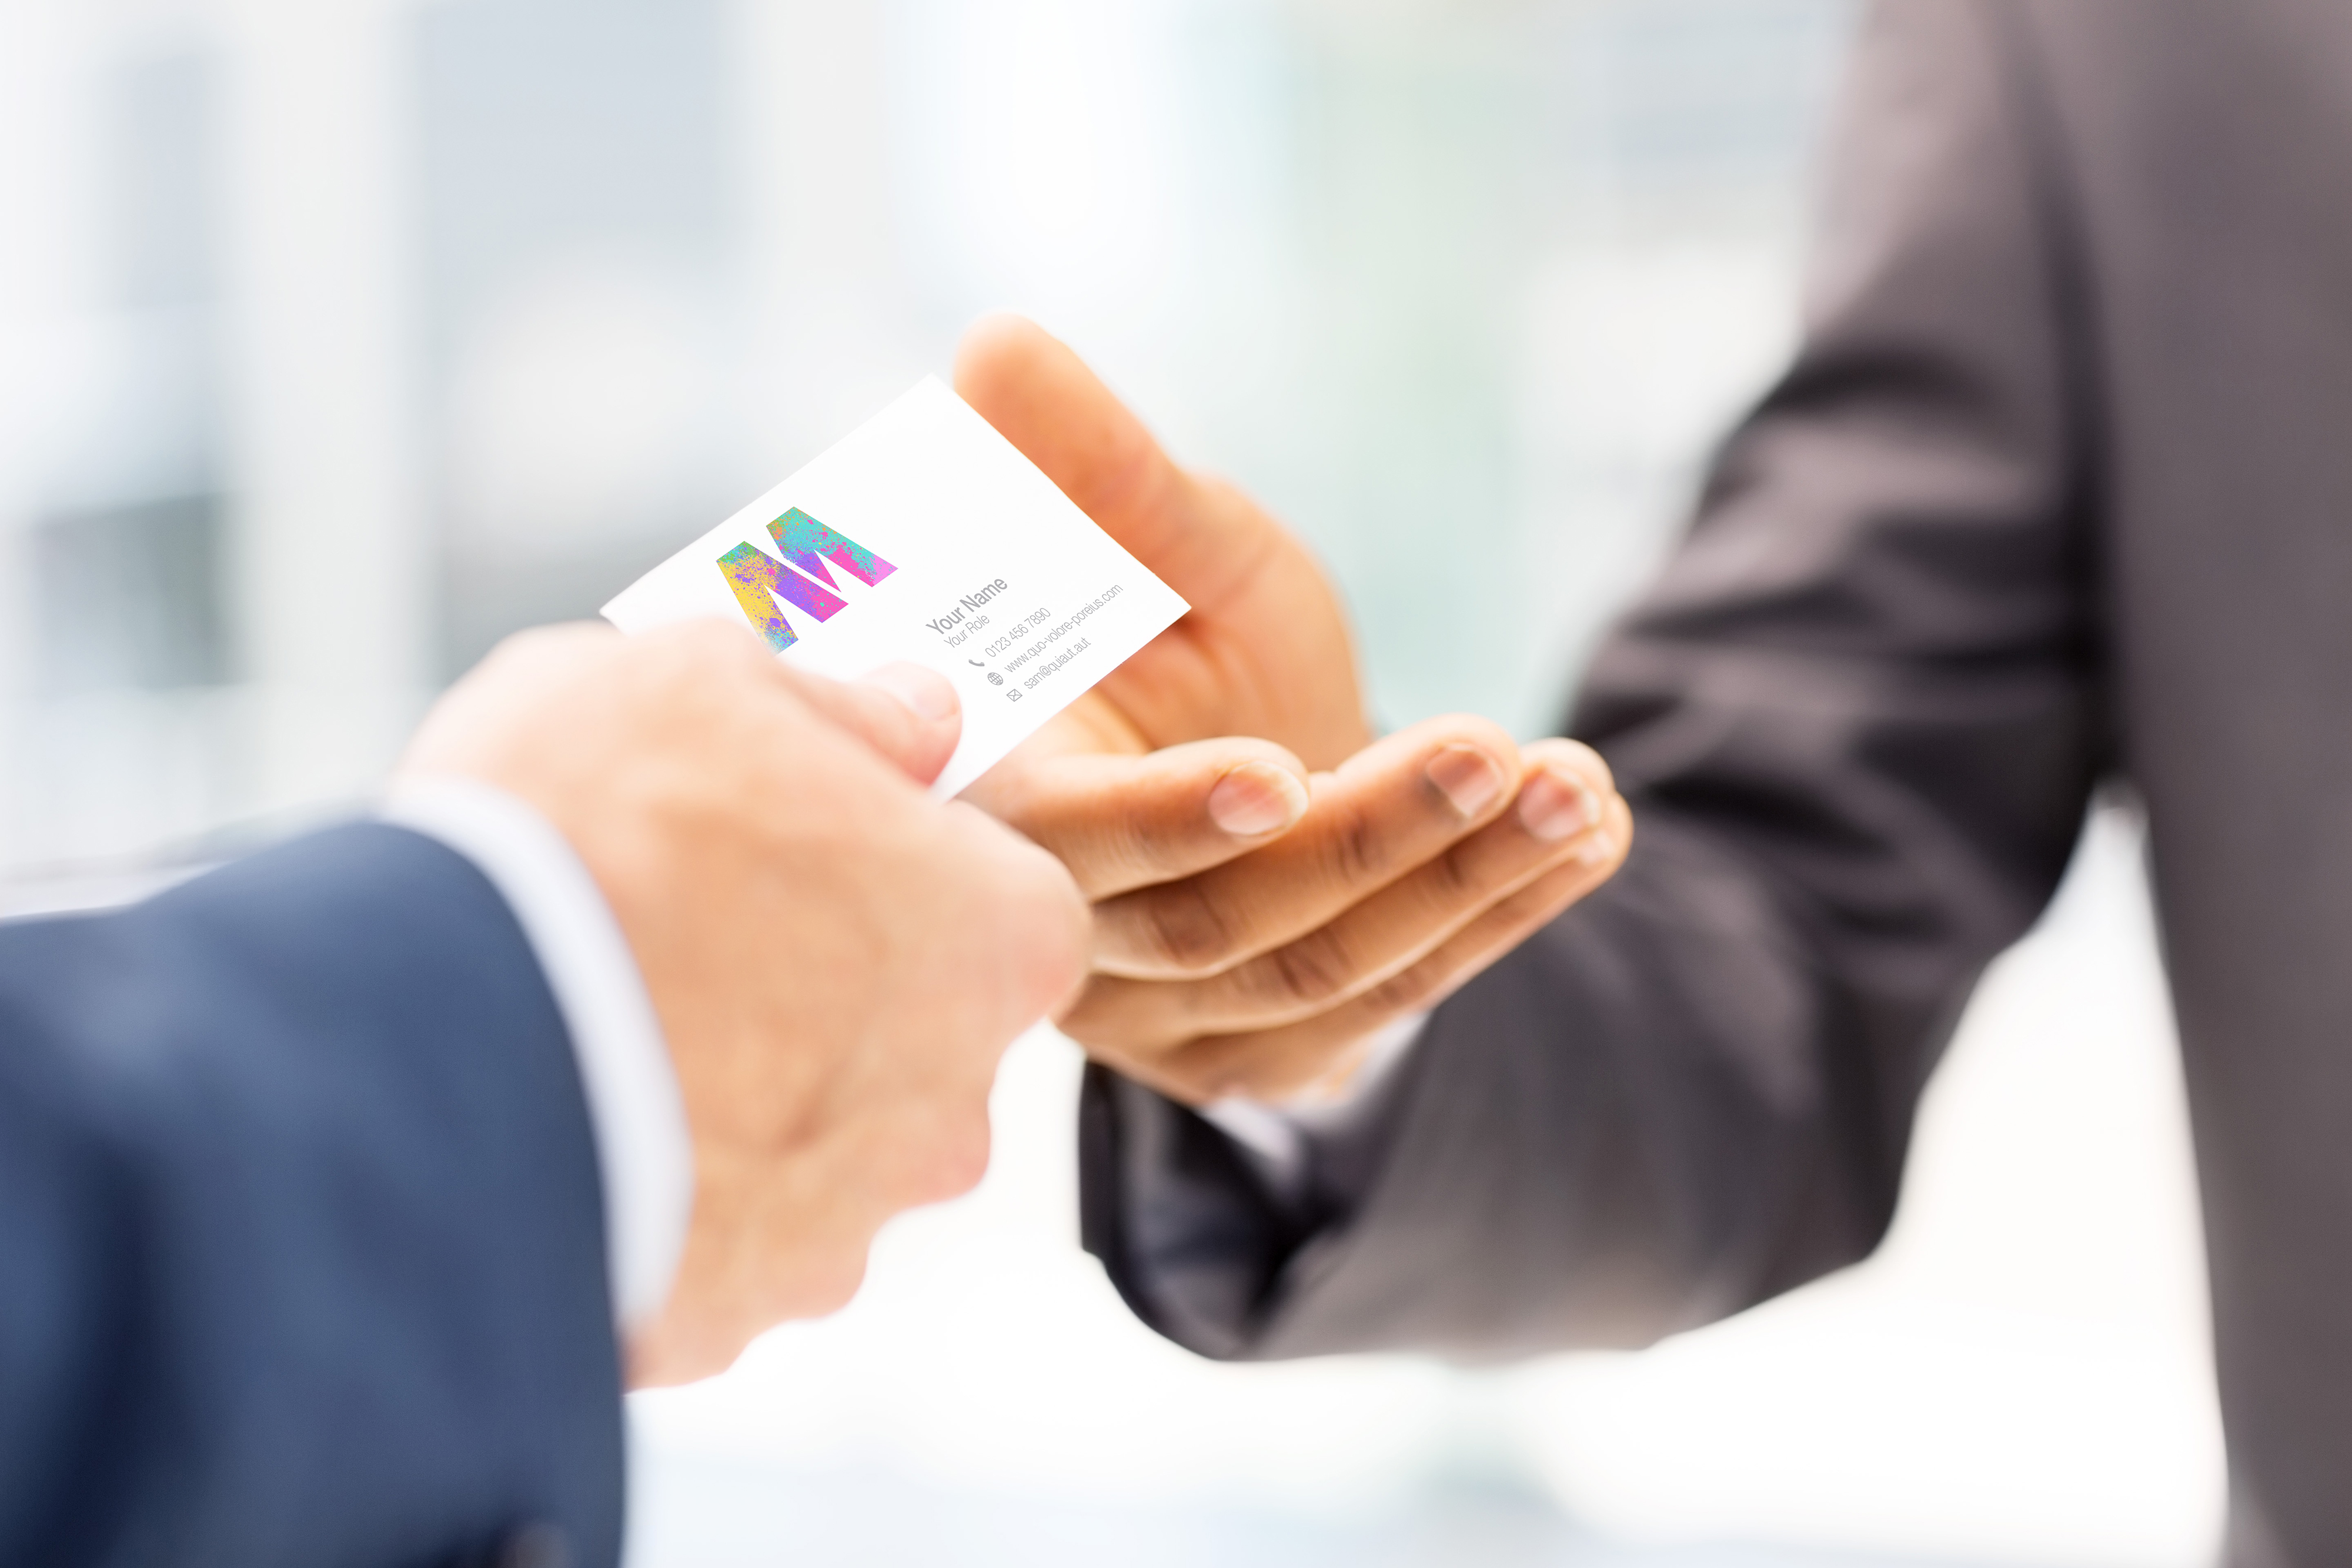 Man handing a custom printed business card in full color to another man